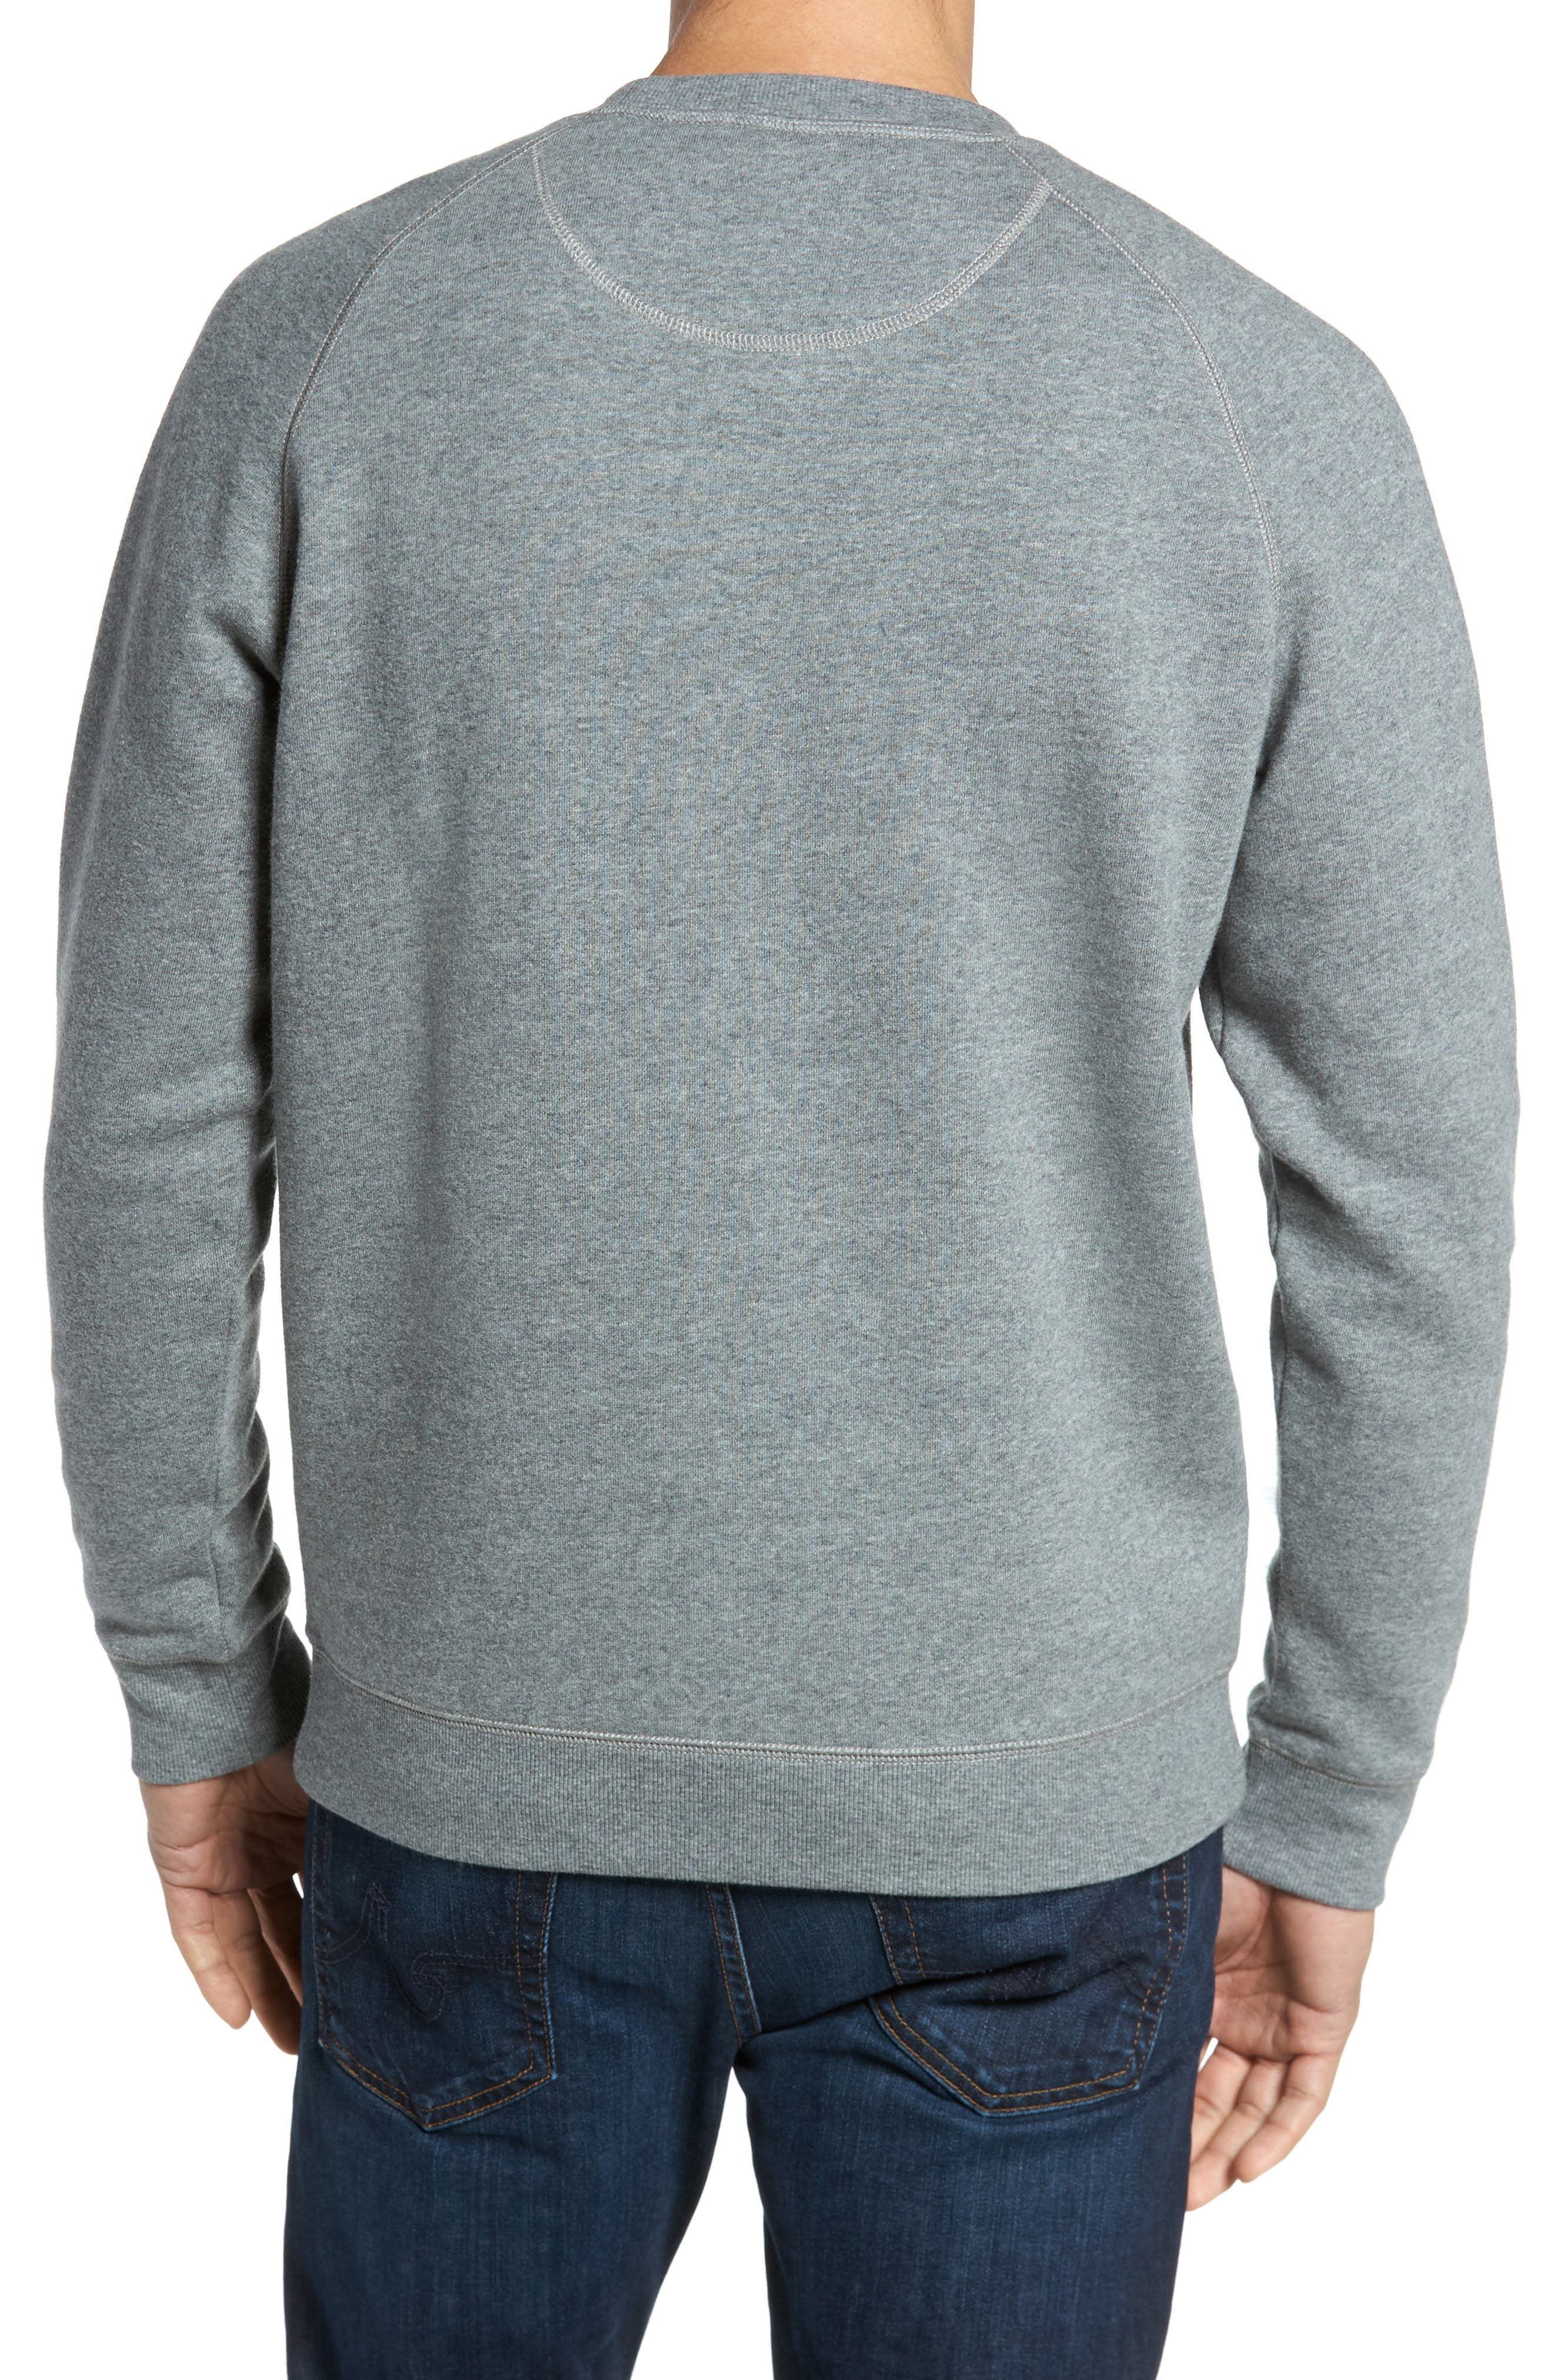 Fleece Sweatshirt,                             Alternate thumbnail 2, color,                             030